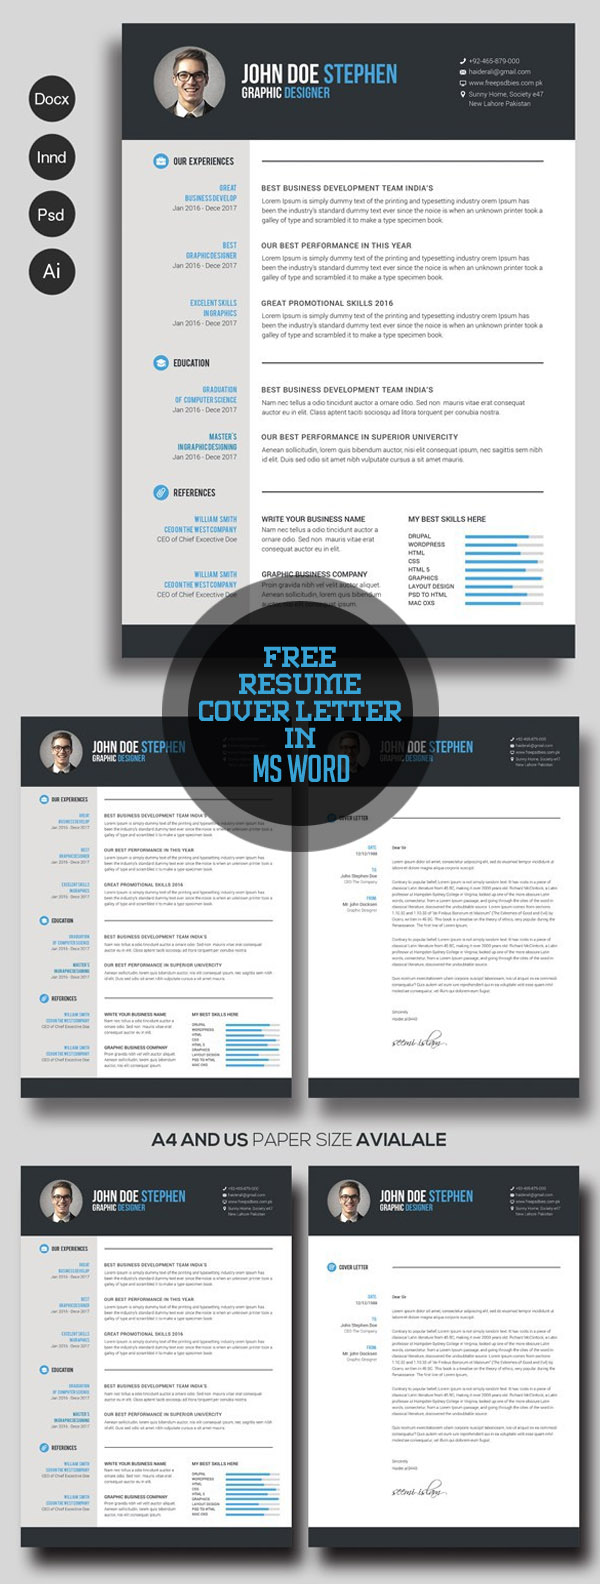 free cv resume templates freebies graphic design junction best business template awards Resume Best Business Resume Template 2017